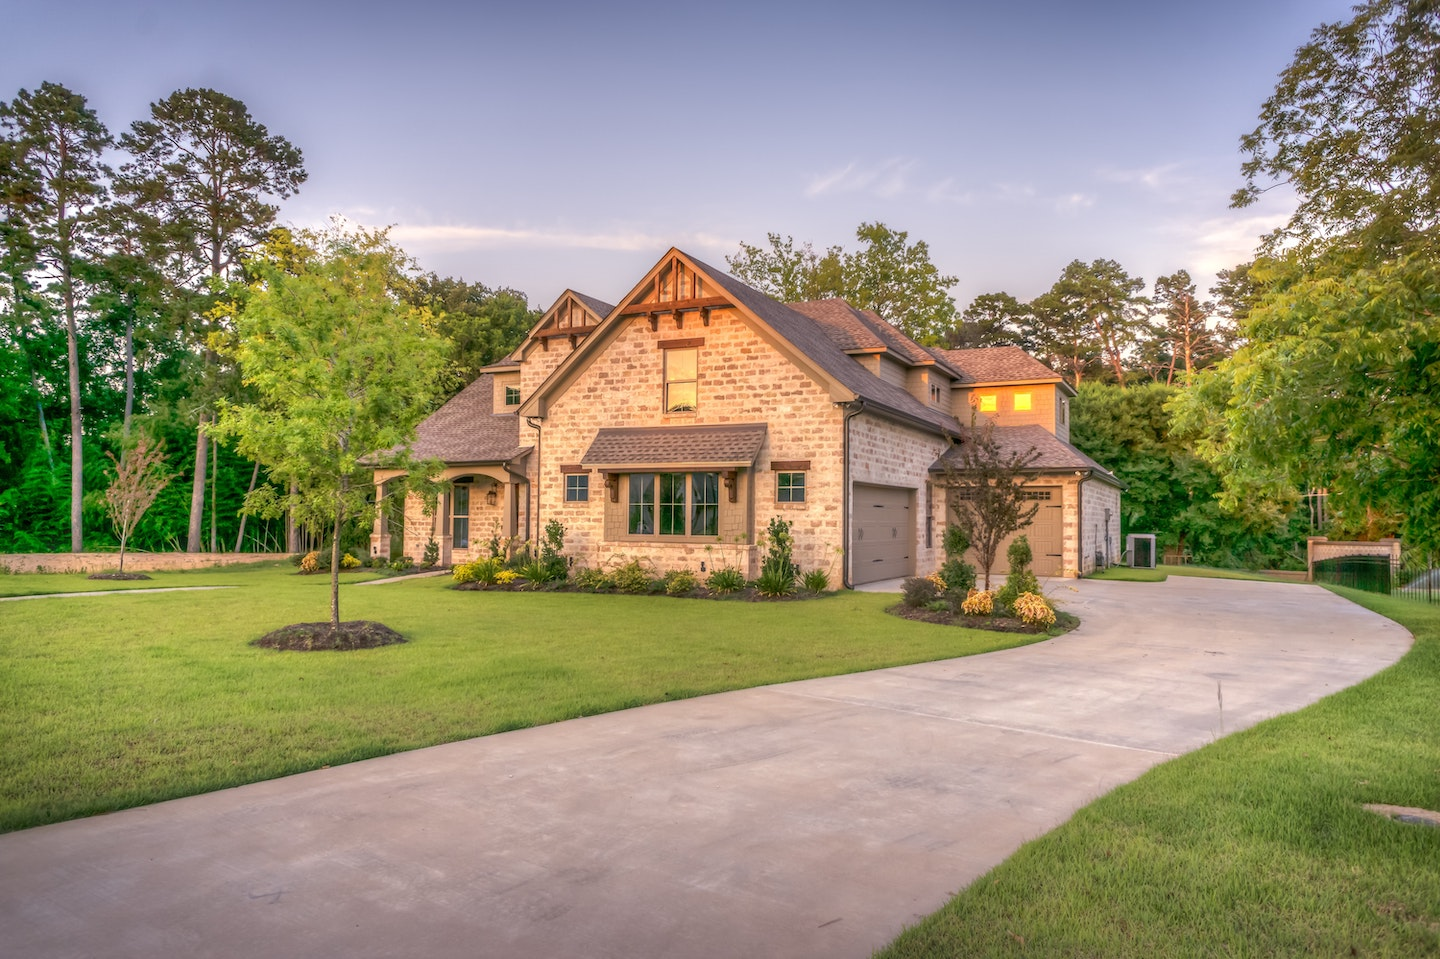 Beautiful stone house at dusk with green lawn